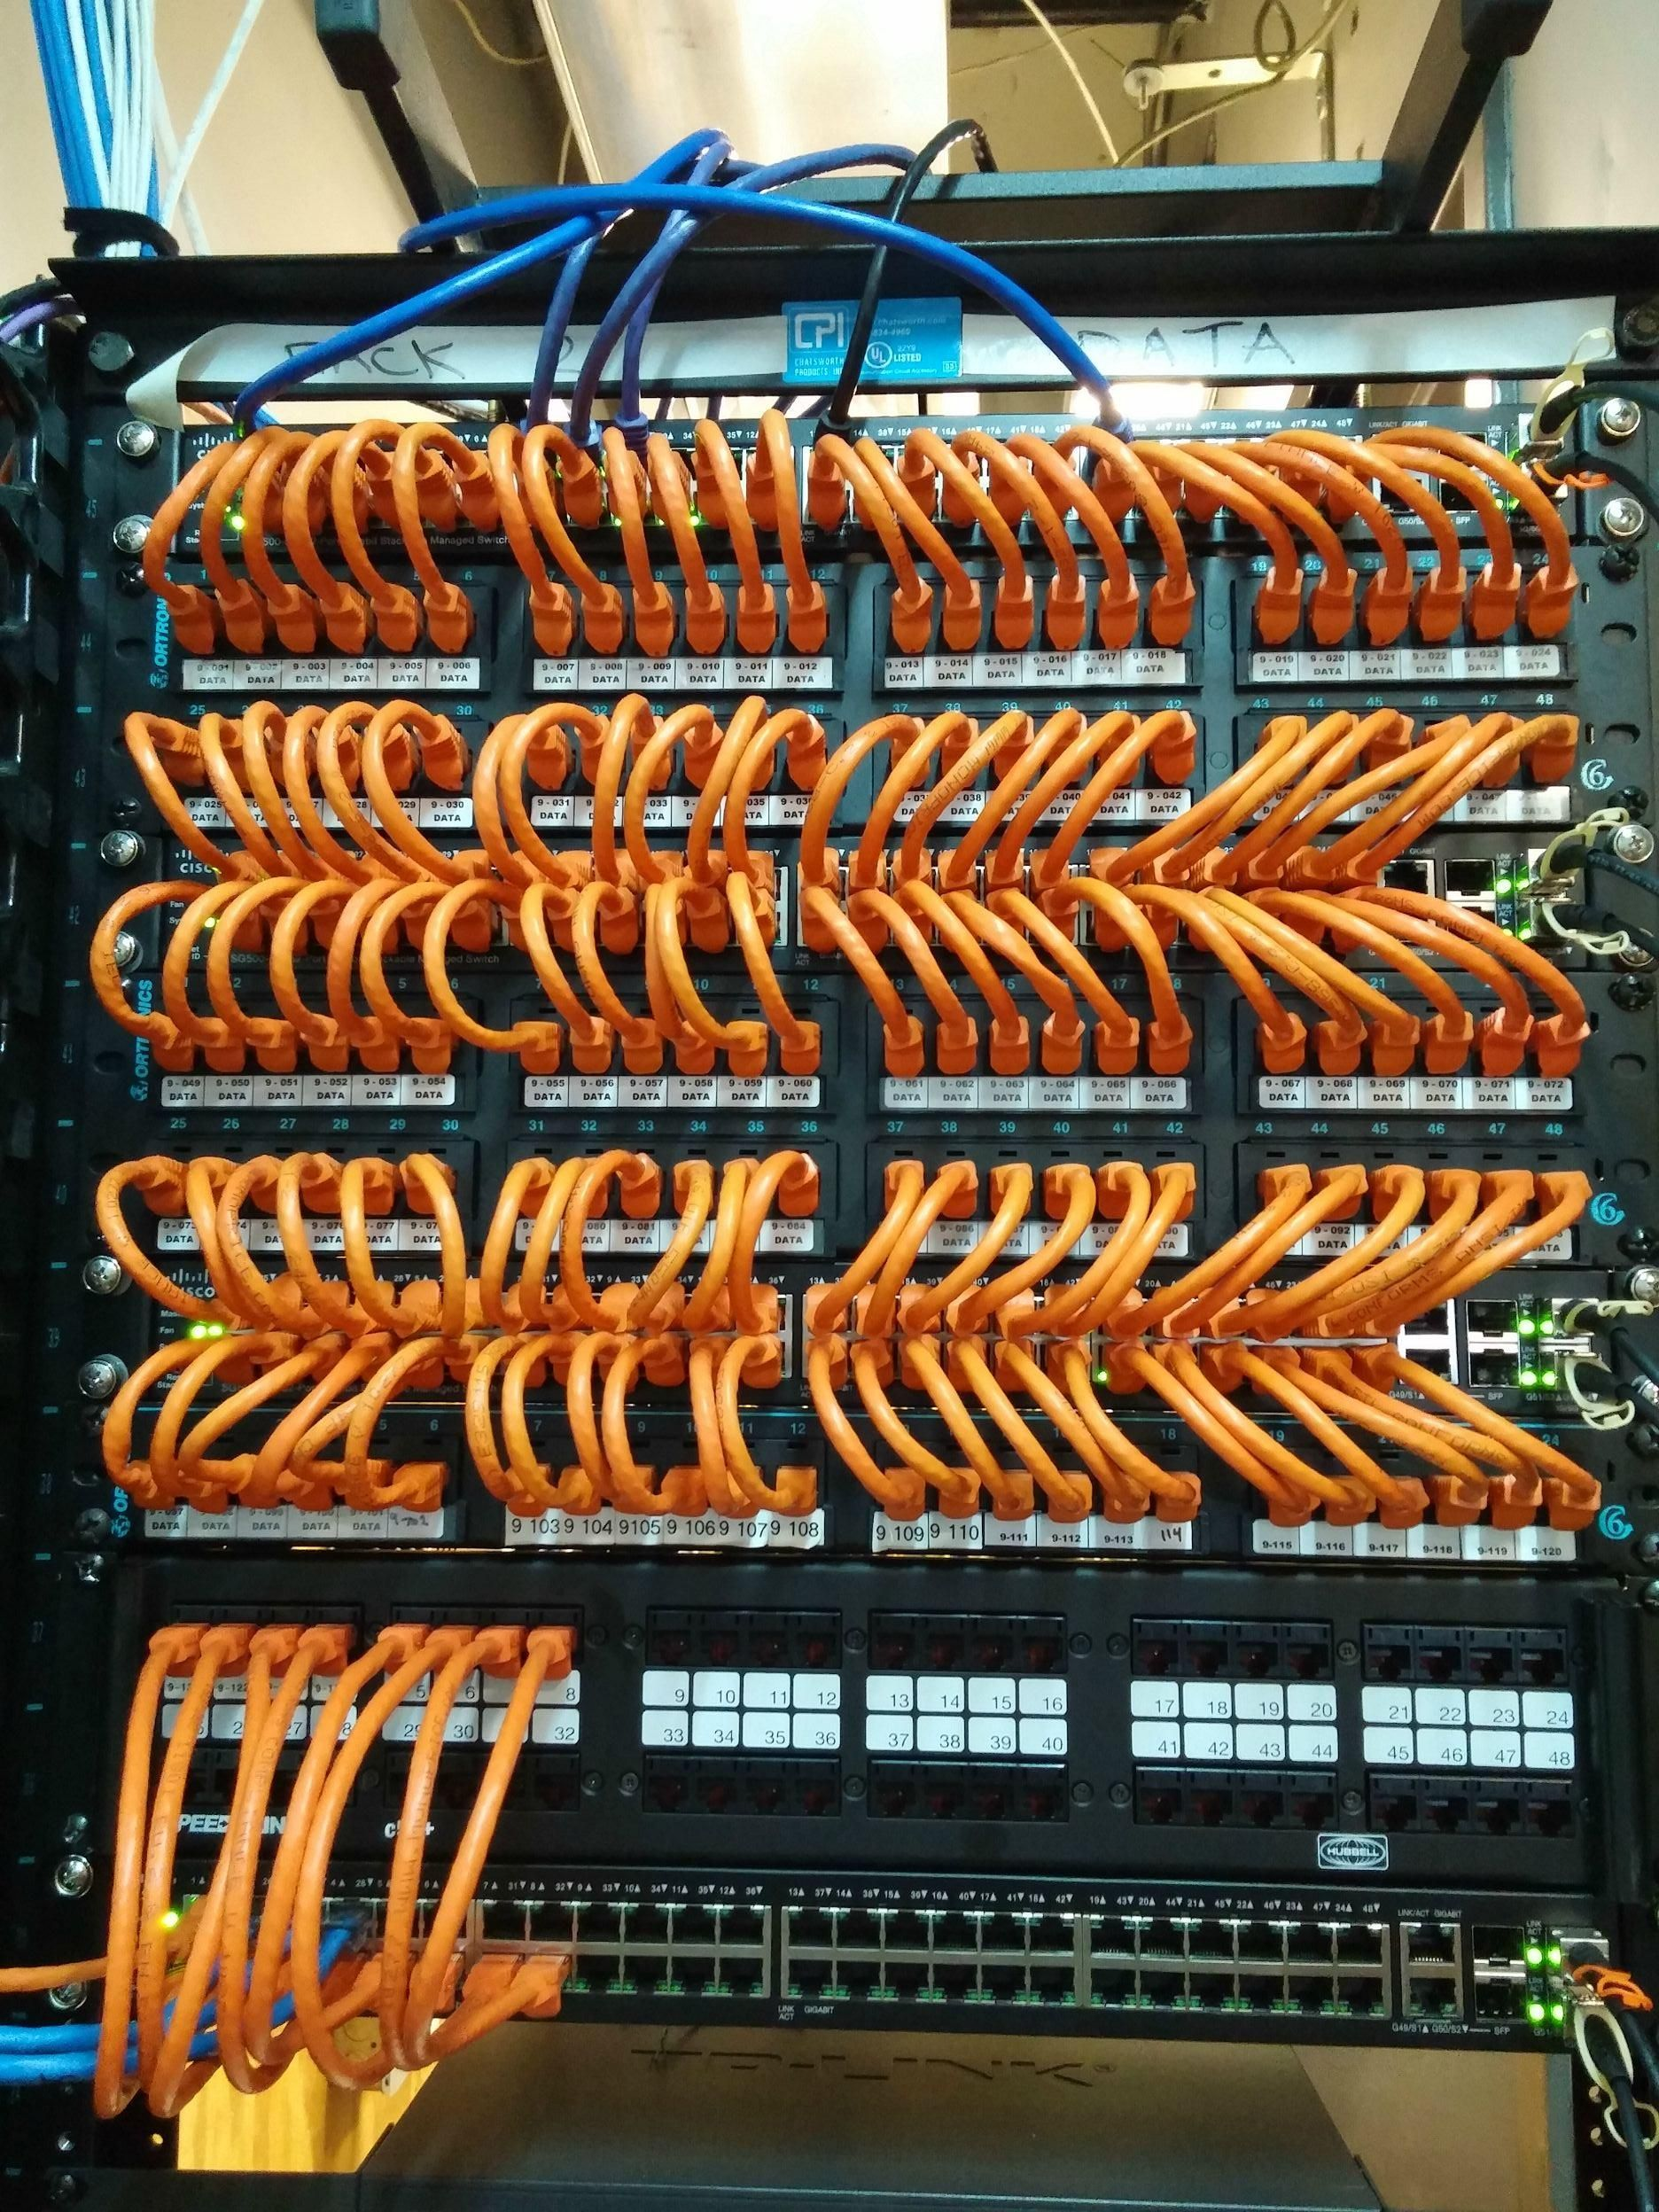 Setting Up A Cisco Network Rack Complete With Fiber Ports Cable Internet Wiring Closet